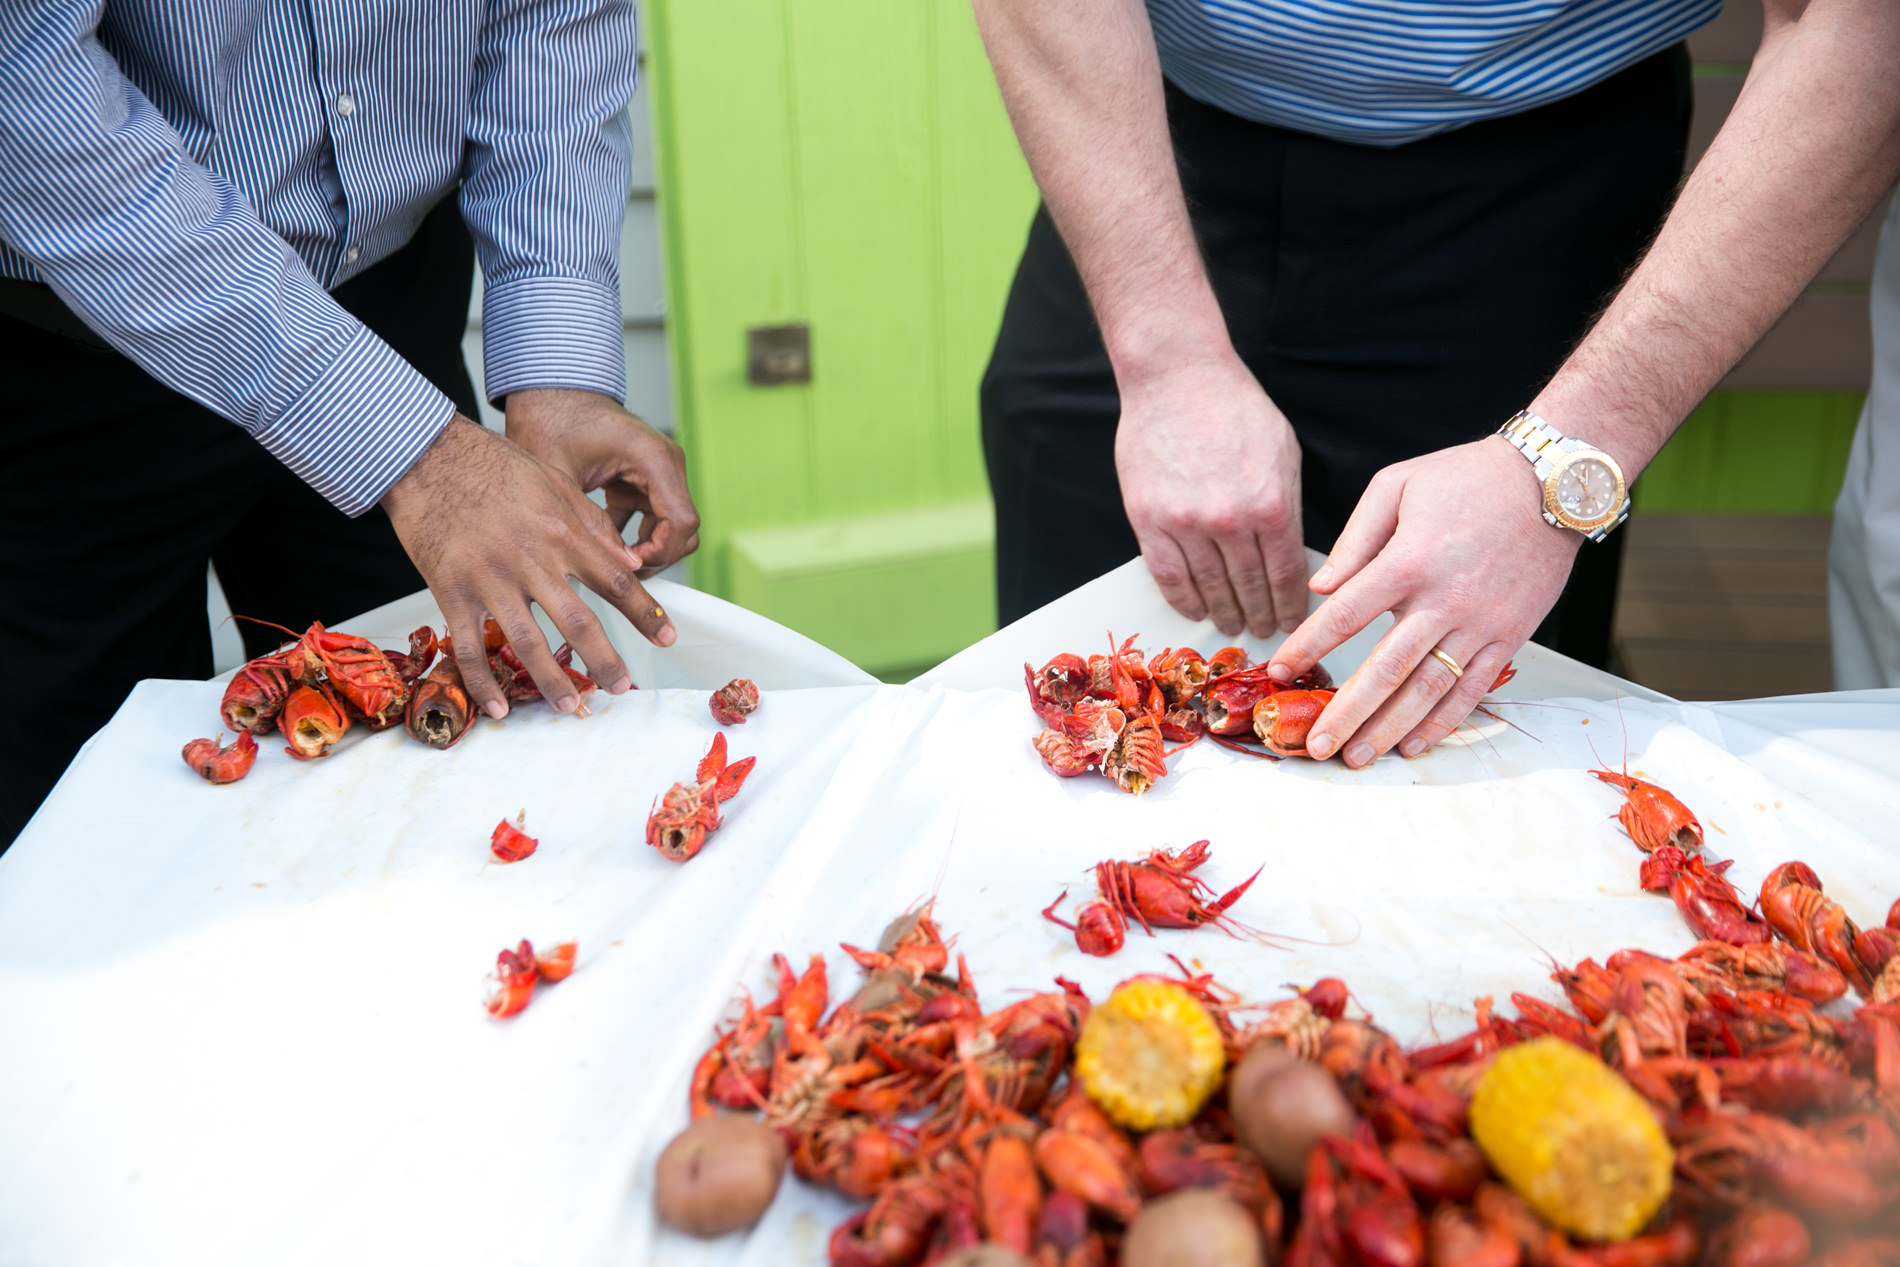 Krawdaddy Kloth - Crawfish Boil Cleaning The Table